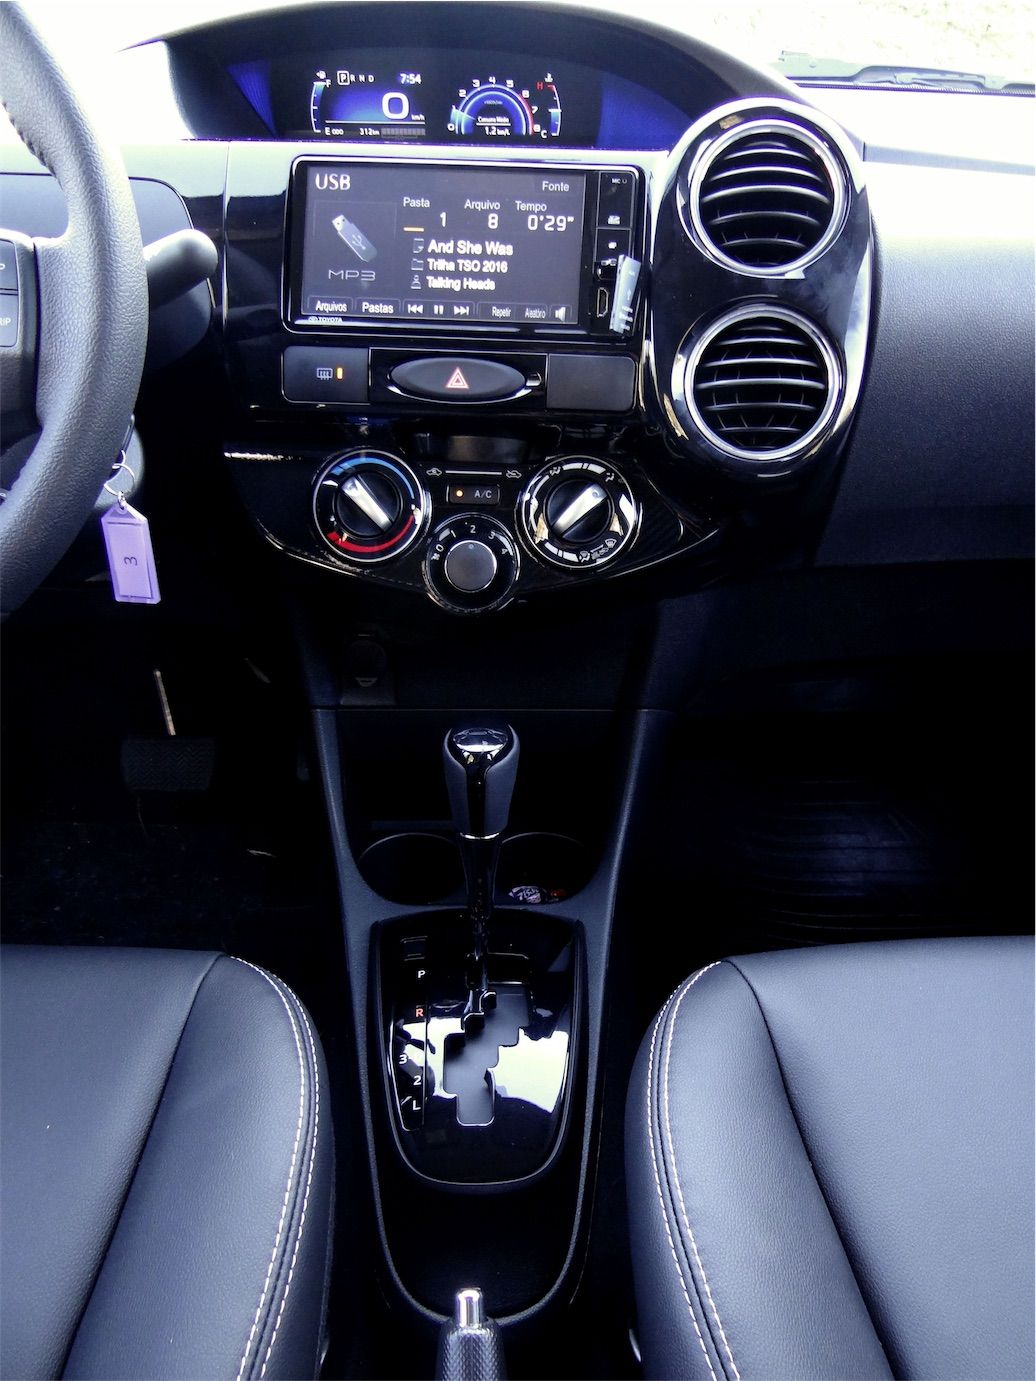 Etios ar condicionado manual